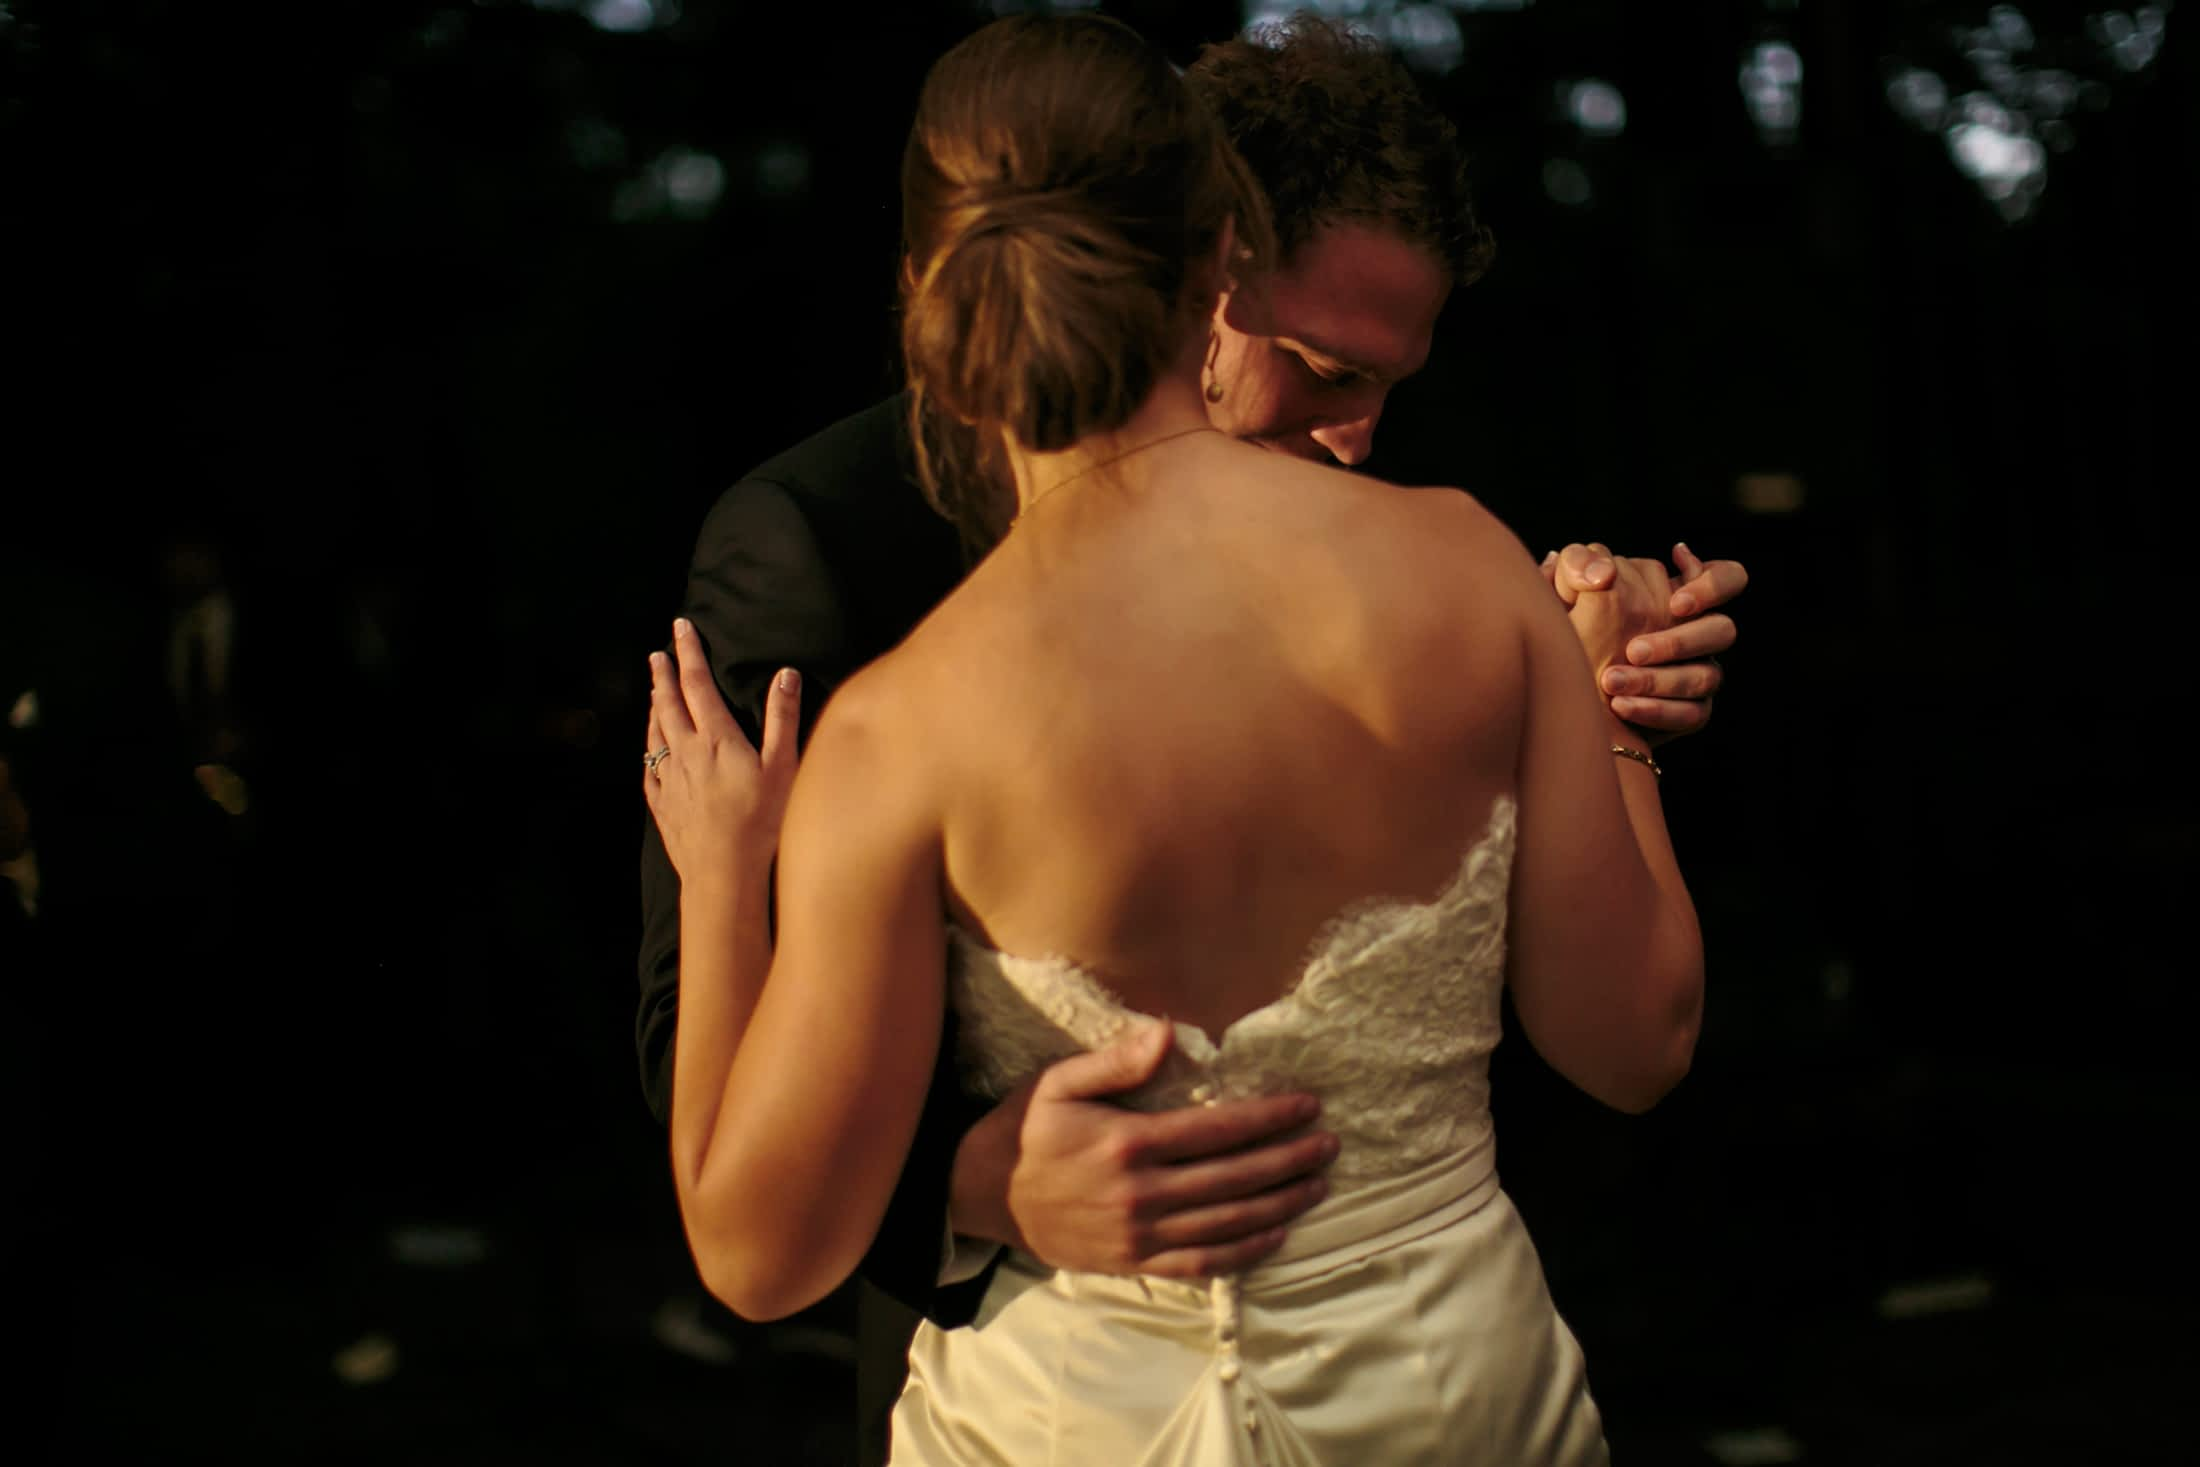 An up-close view from behind the bride as the groom holds her during their first dance.